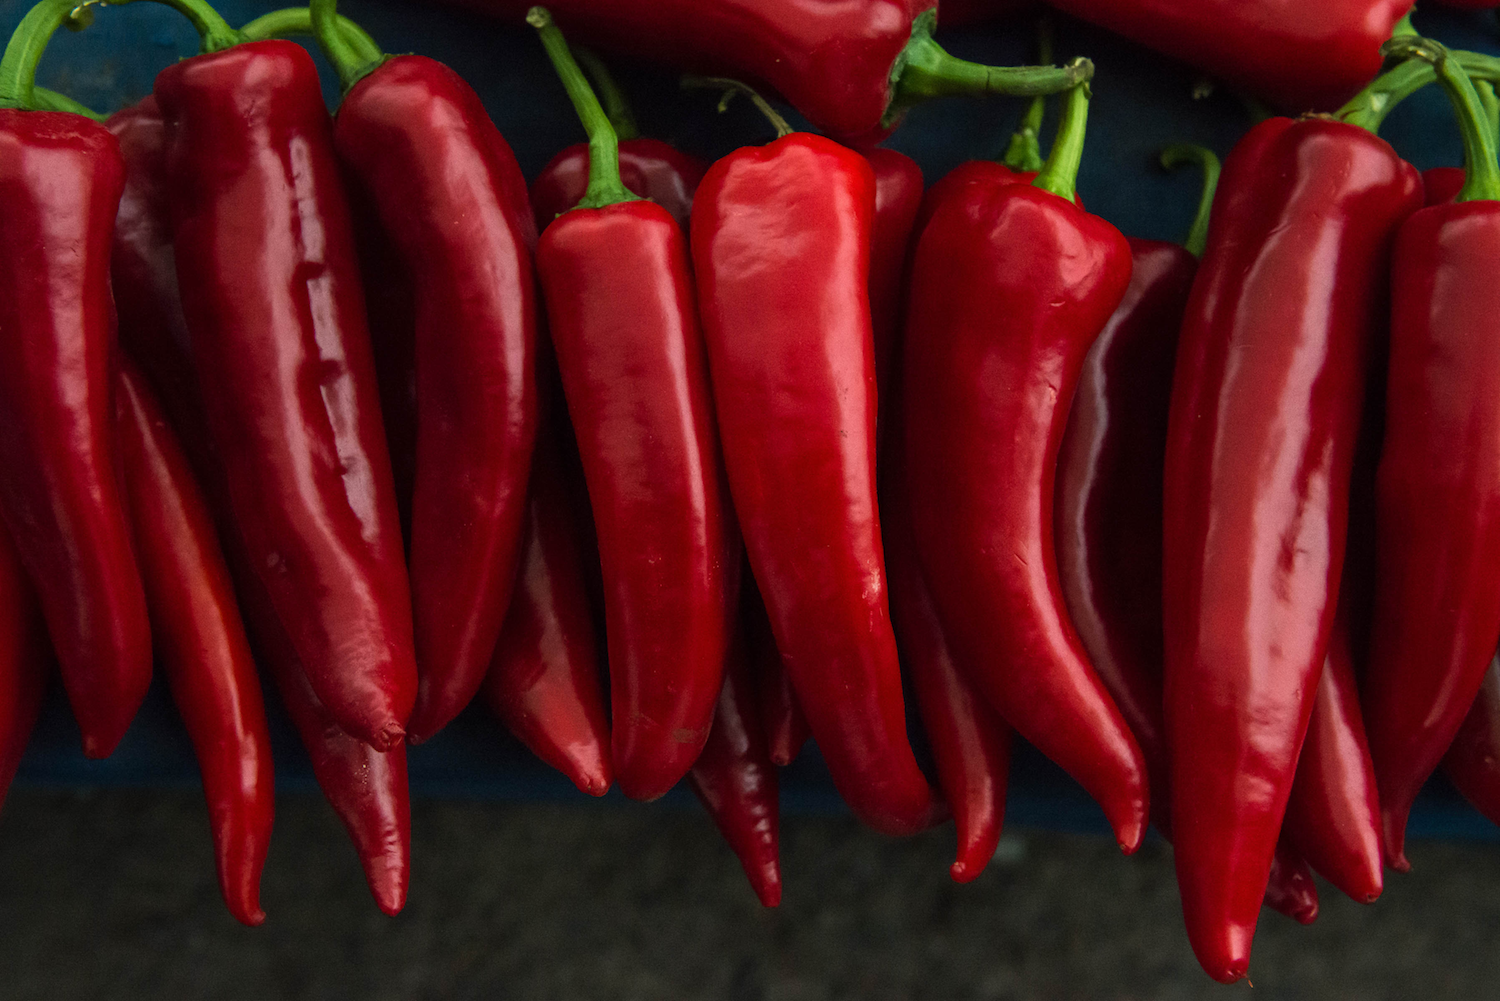 red chili peppers lined up like soldiers at Bakirkoy Market.png